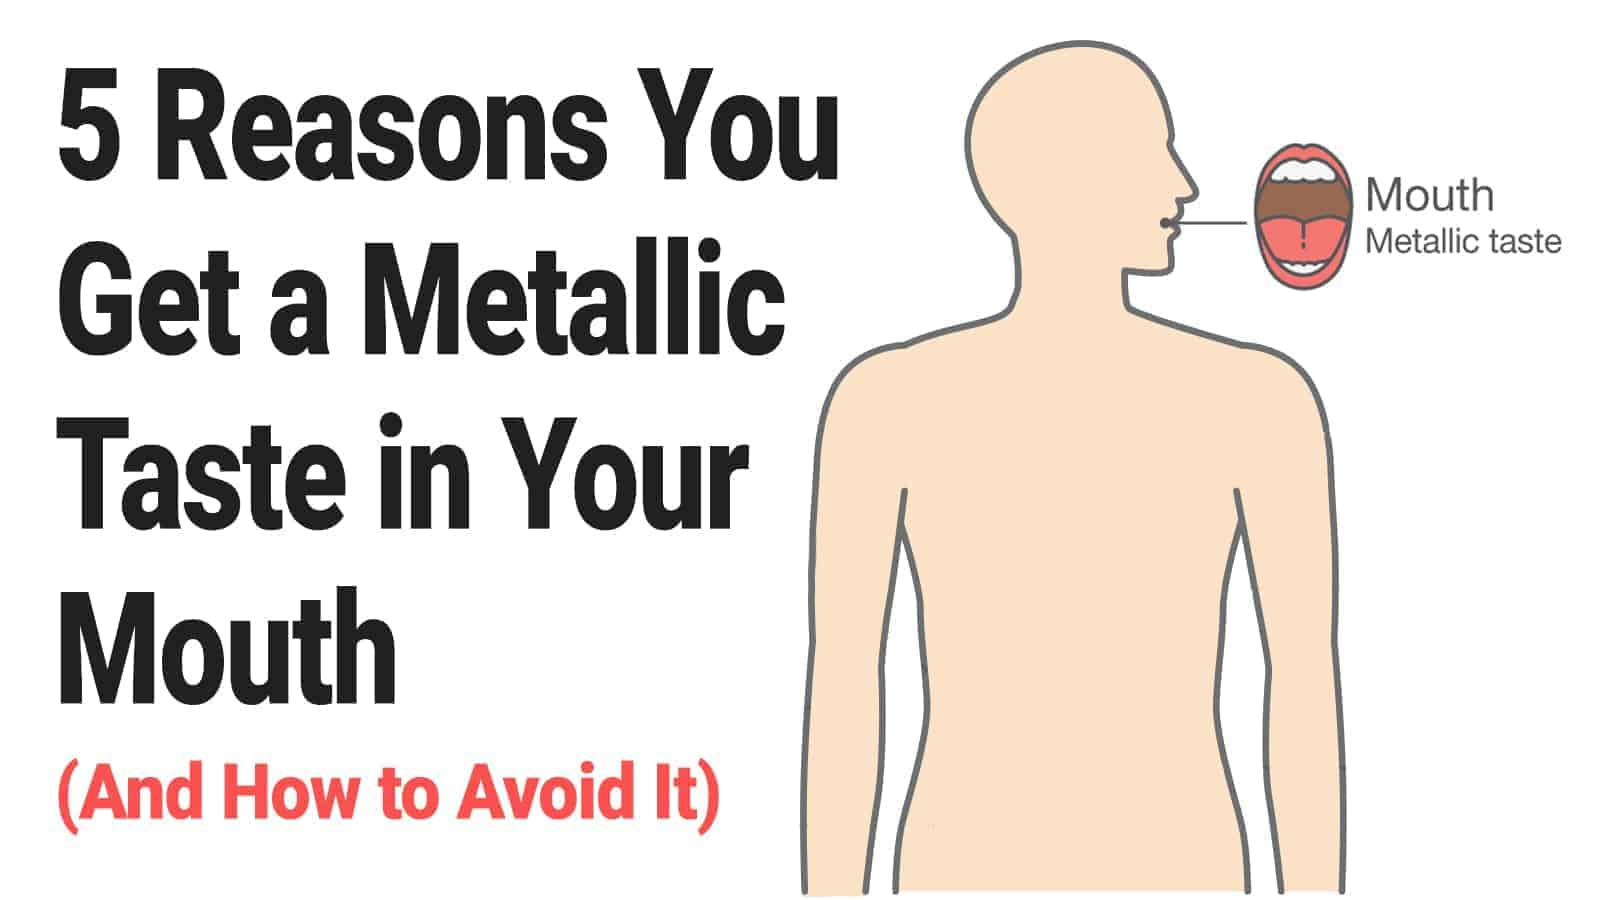 5 Reasons You Get a Metallic Taste in Your Mouth (And How to